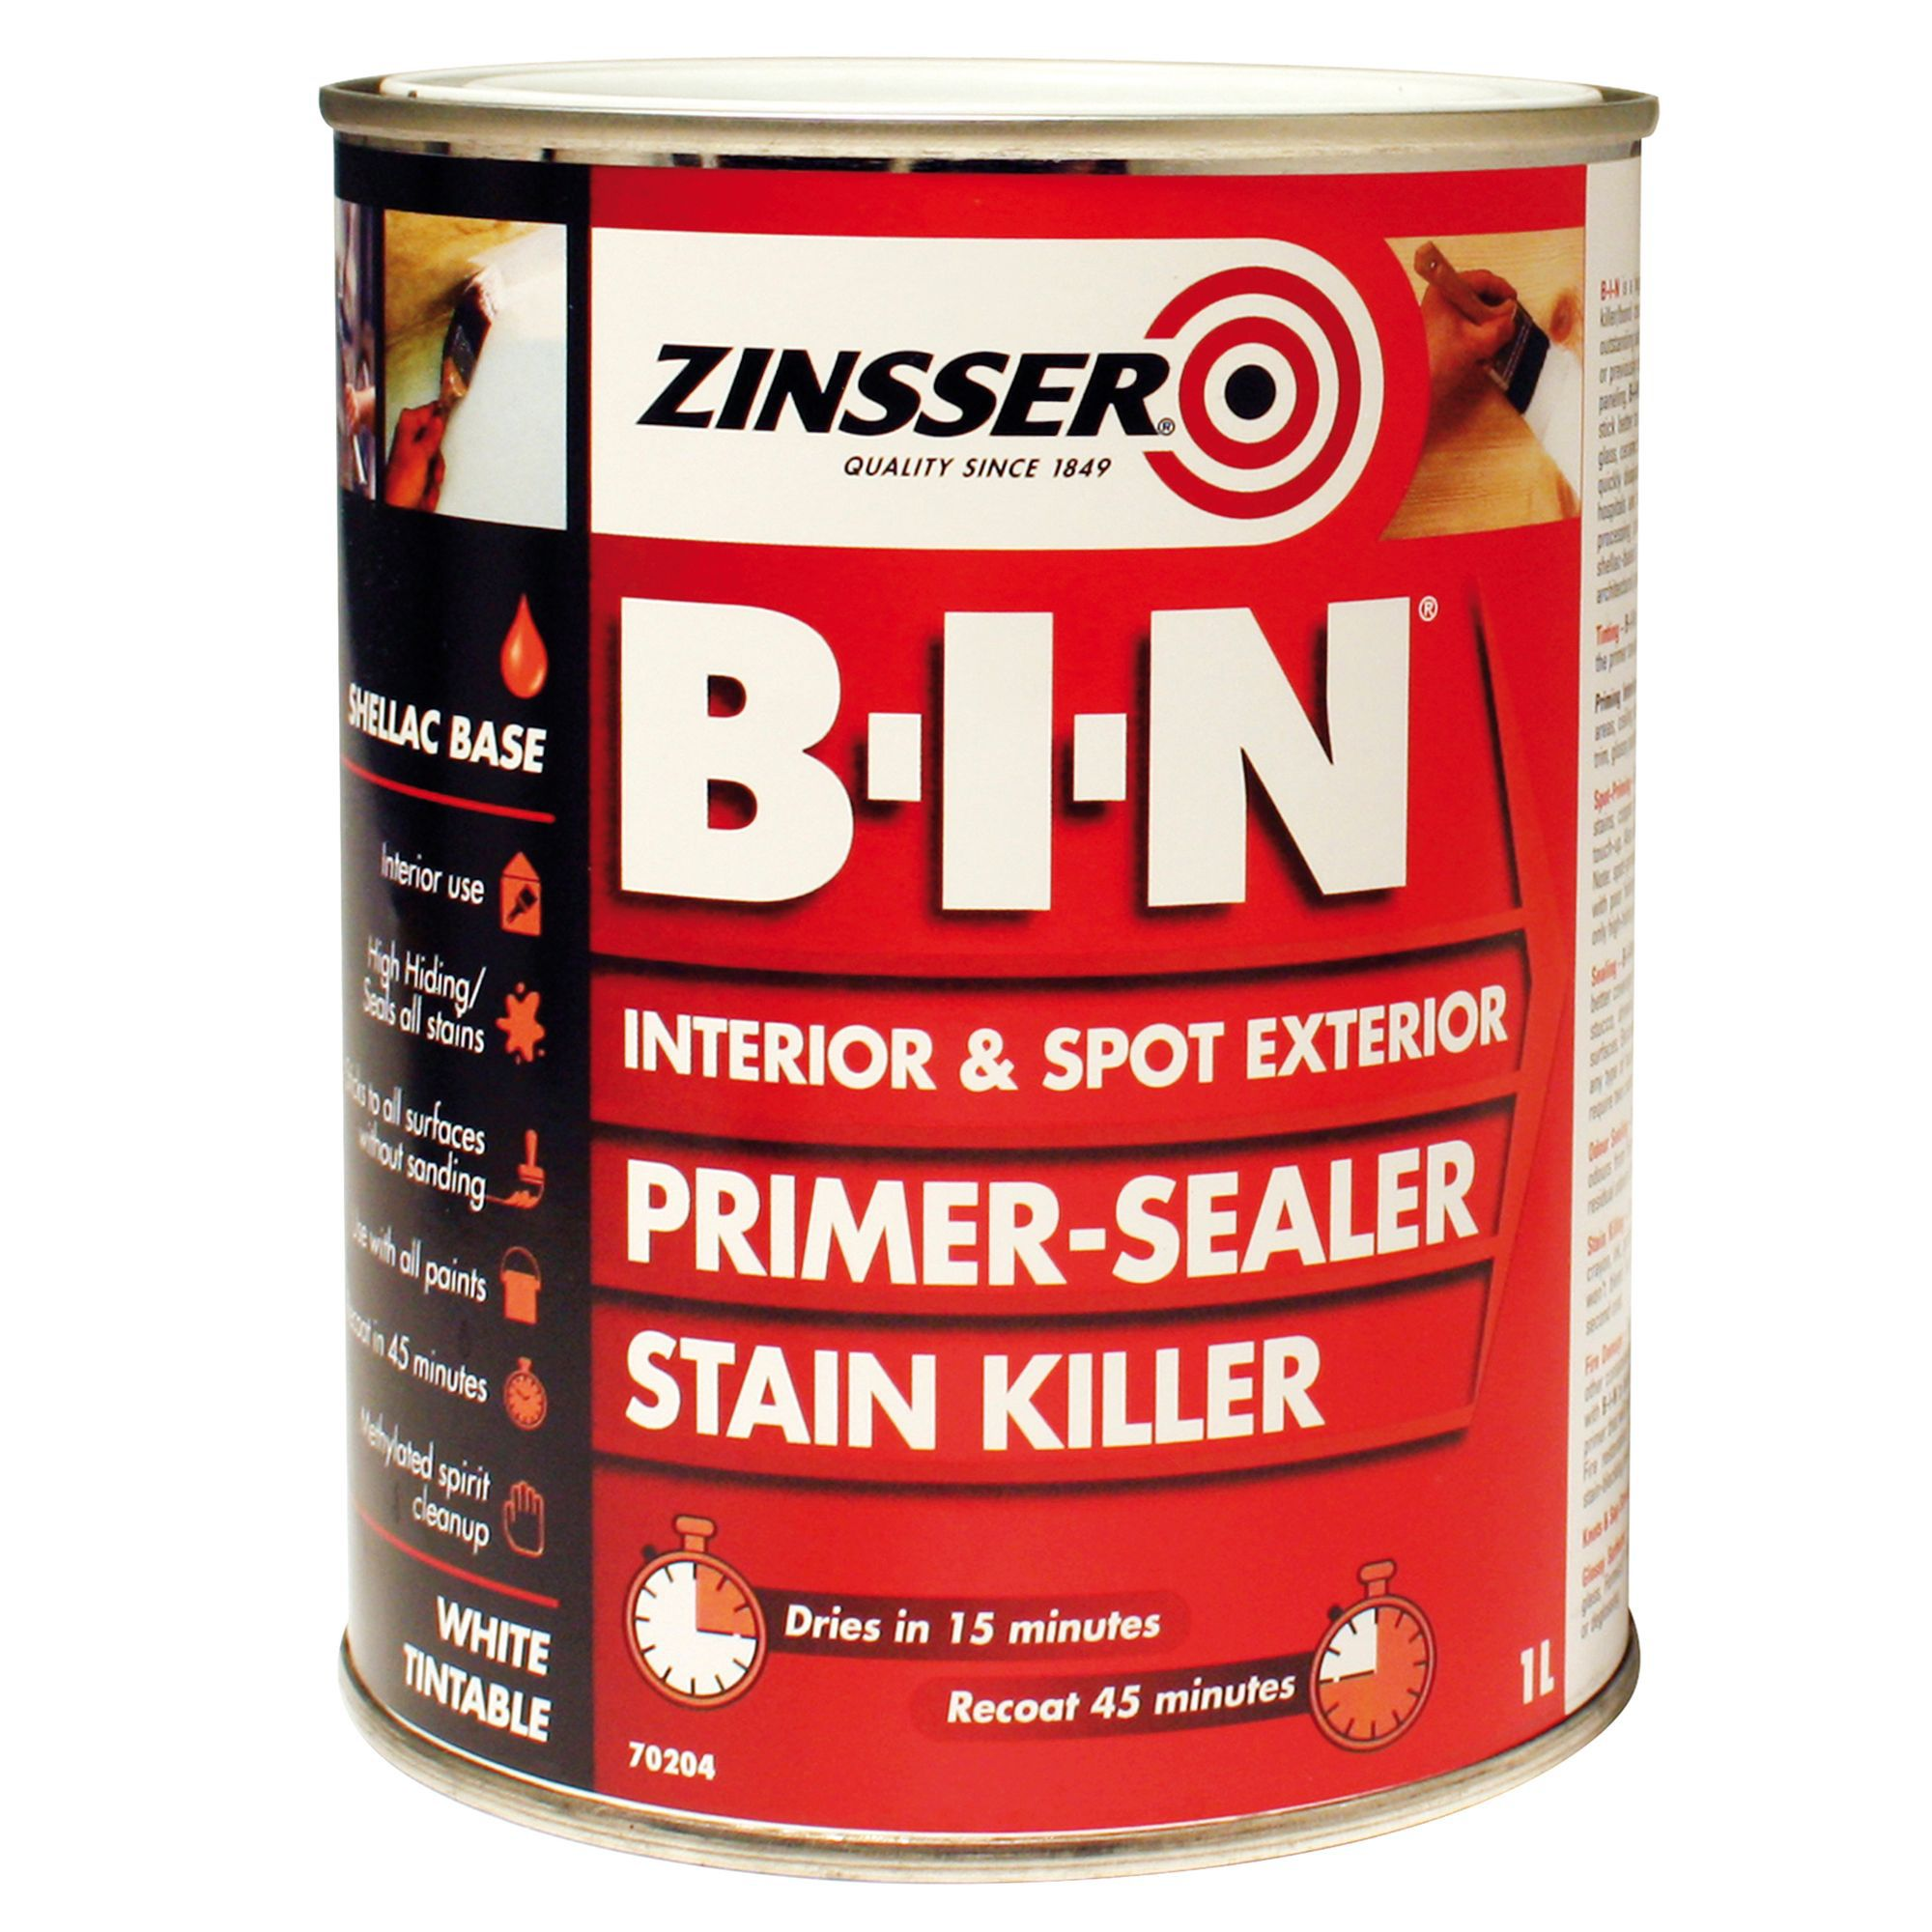 Image result for Zinsser bin